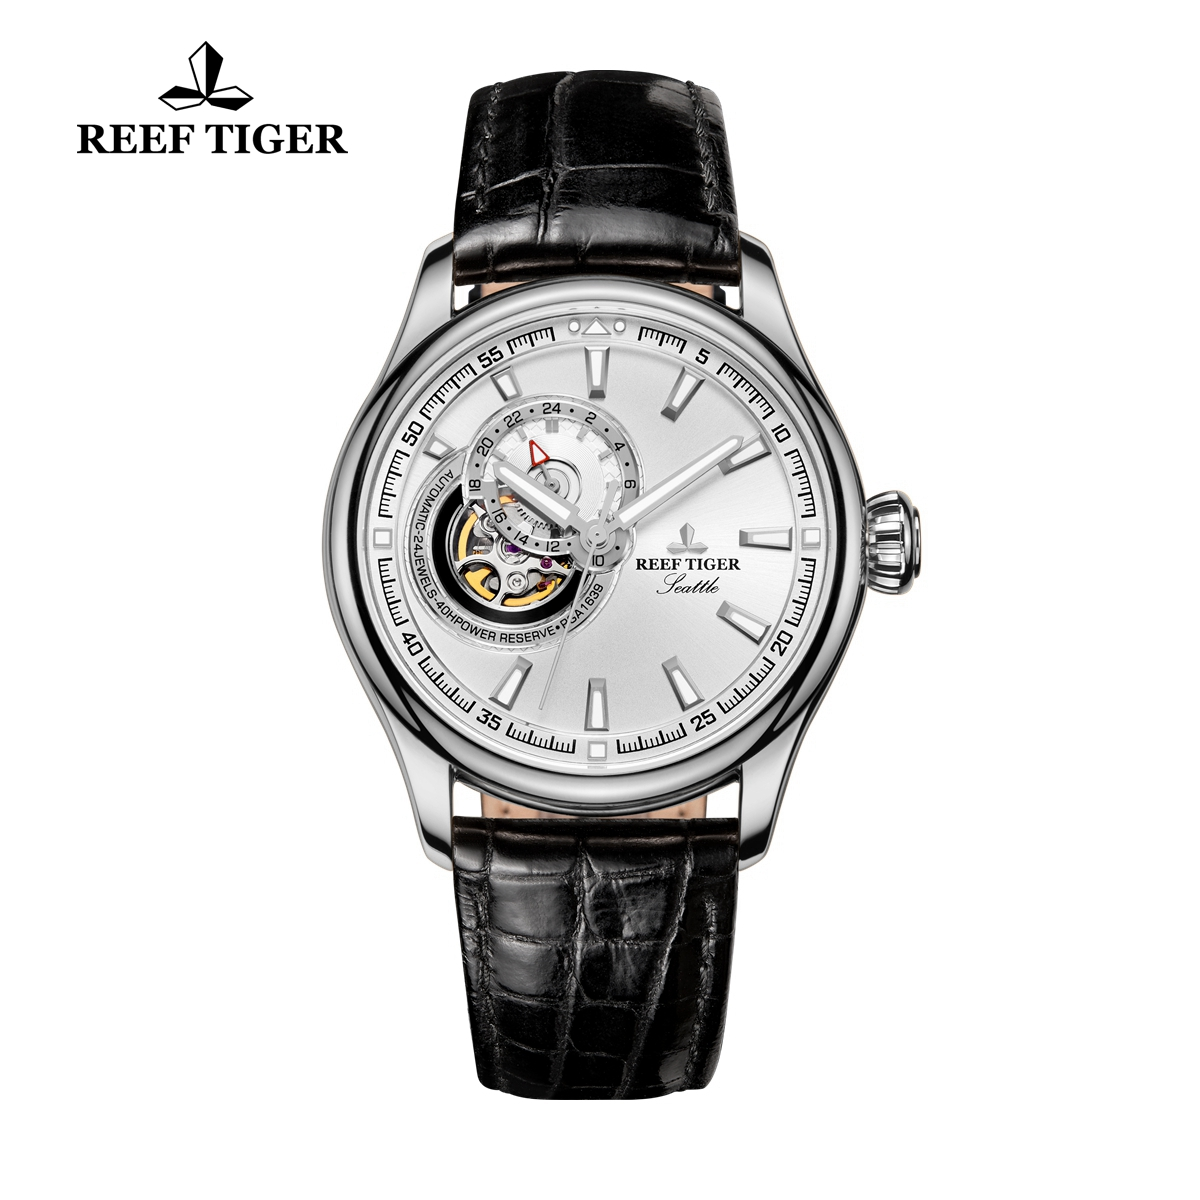 Reef Tiger Seattle Sea Hawk Dress Automatic Watch Steel White Dial Black Leather Strap RGA1639-YWBS